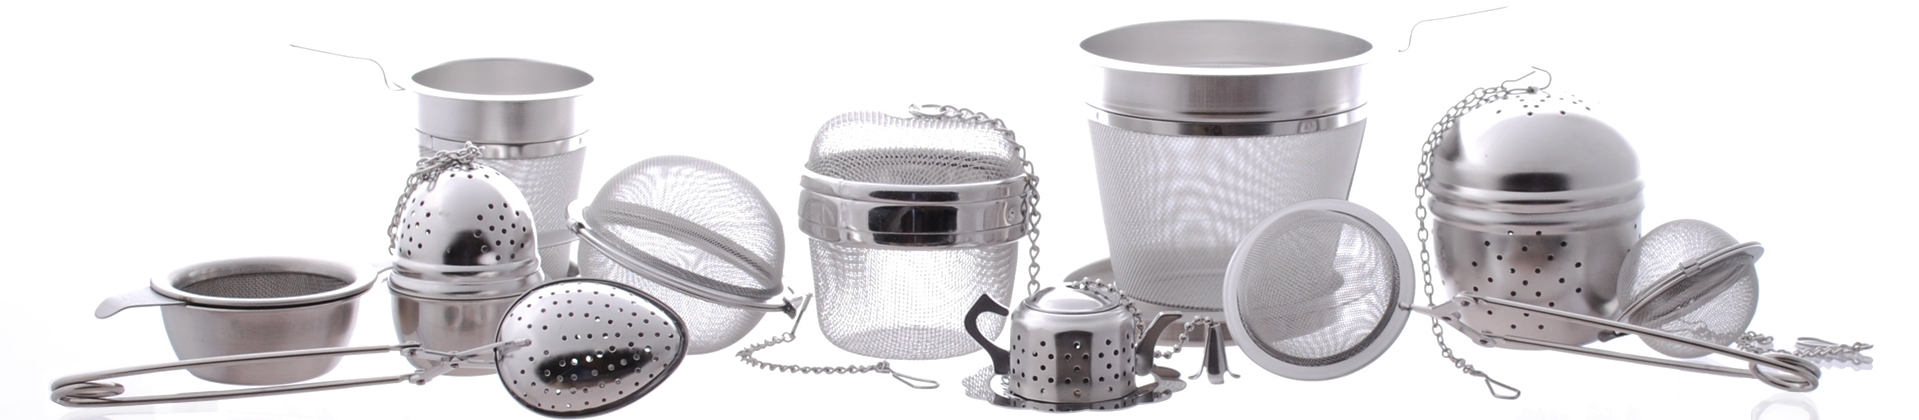 Tea Infusers, Strainers & Filters